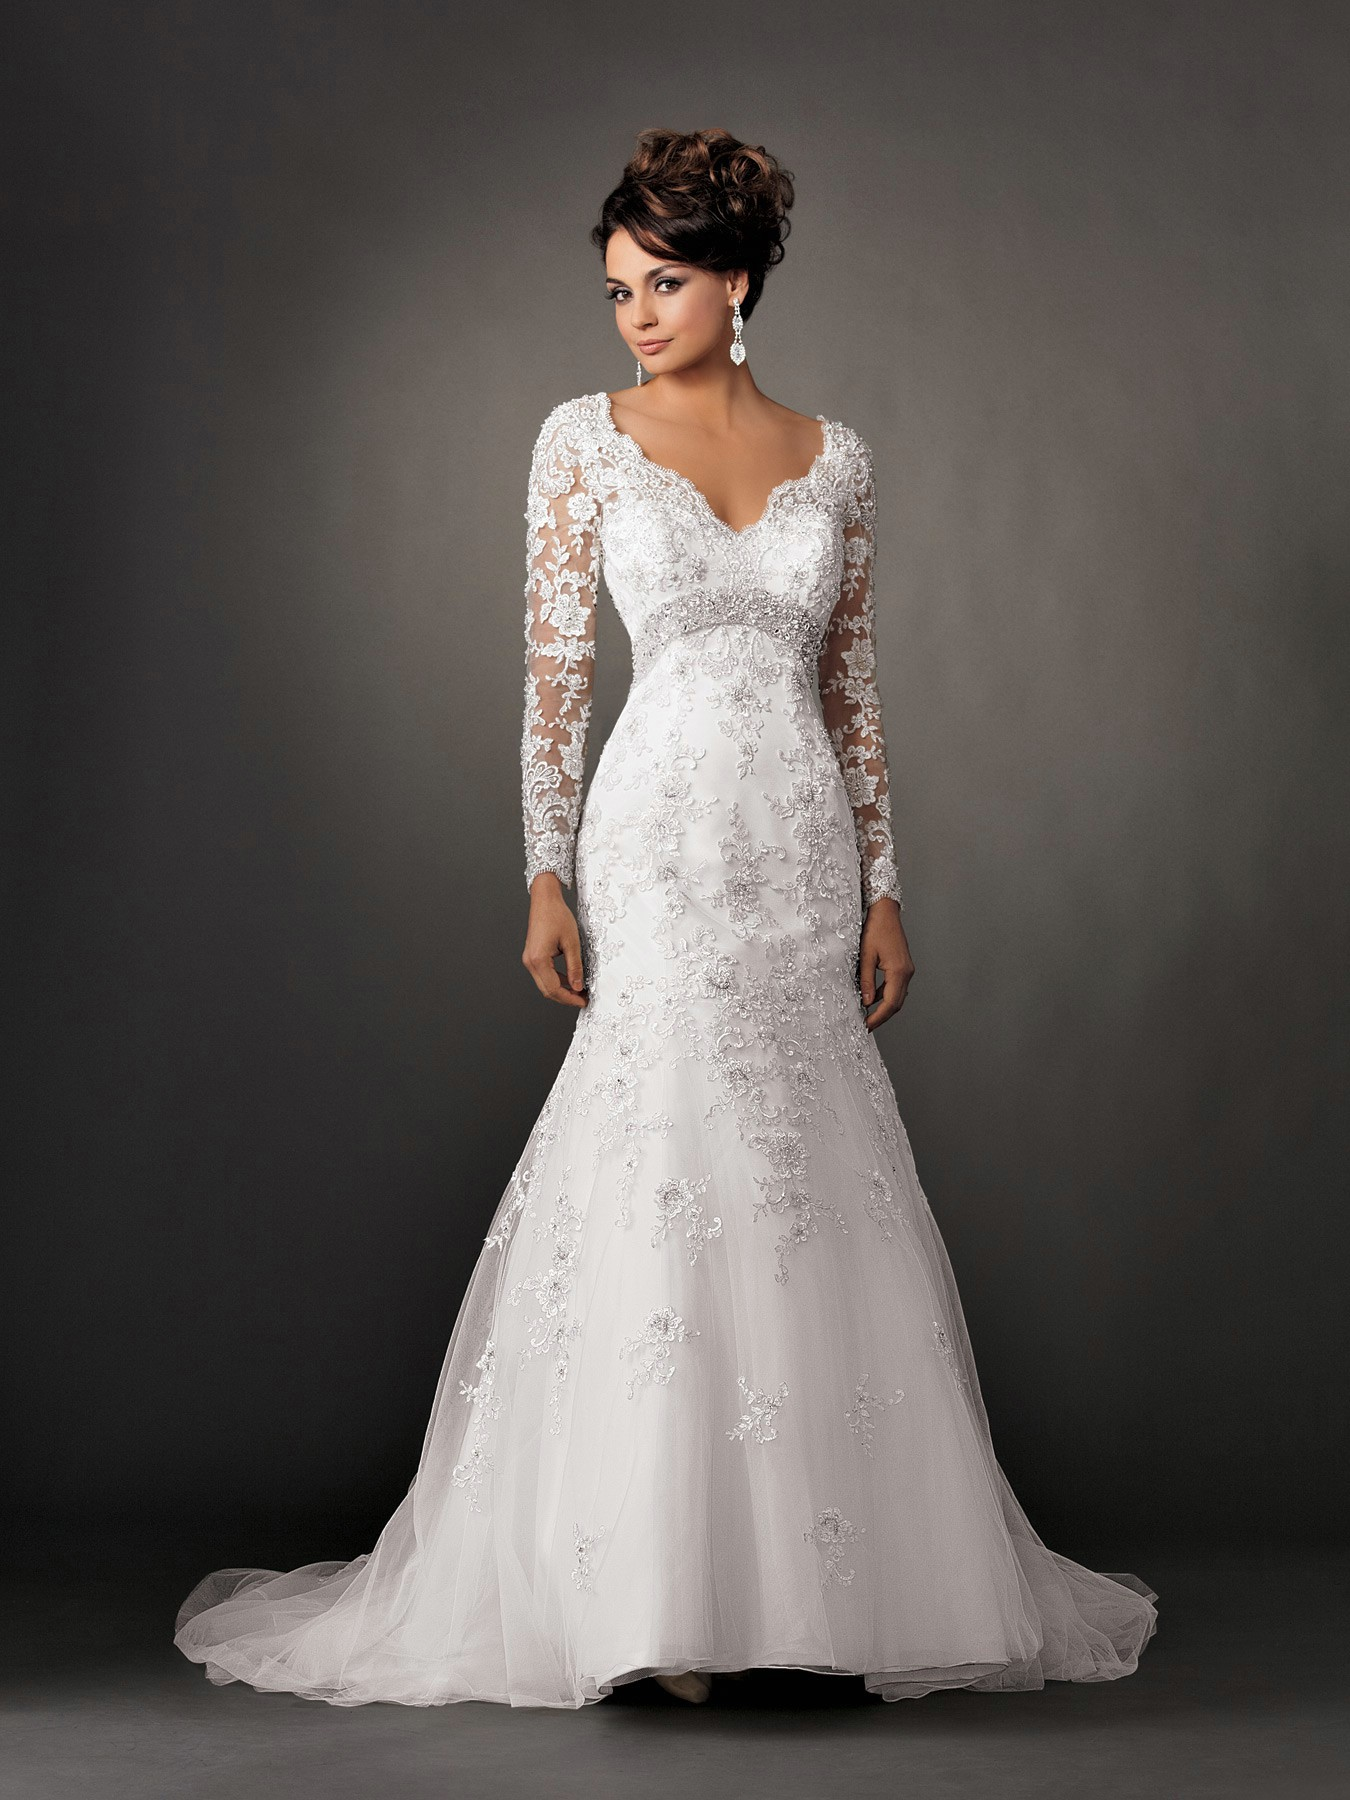 Lace wedding dress with long sleeves and a line sang maestro for Long sleeve dresses to wear to a wedding